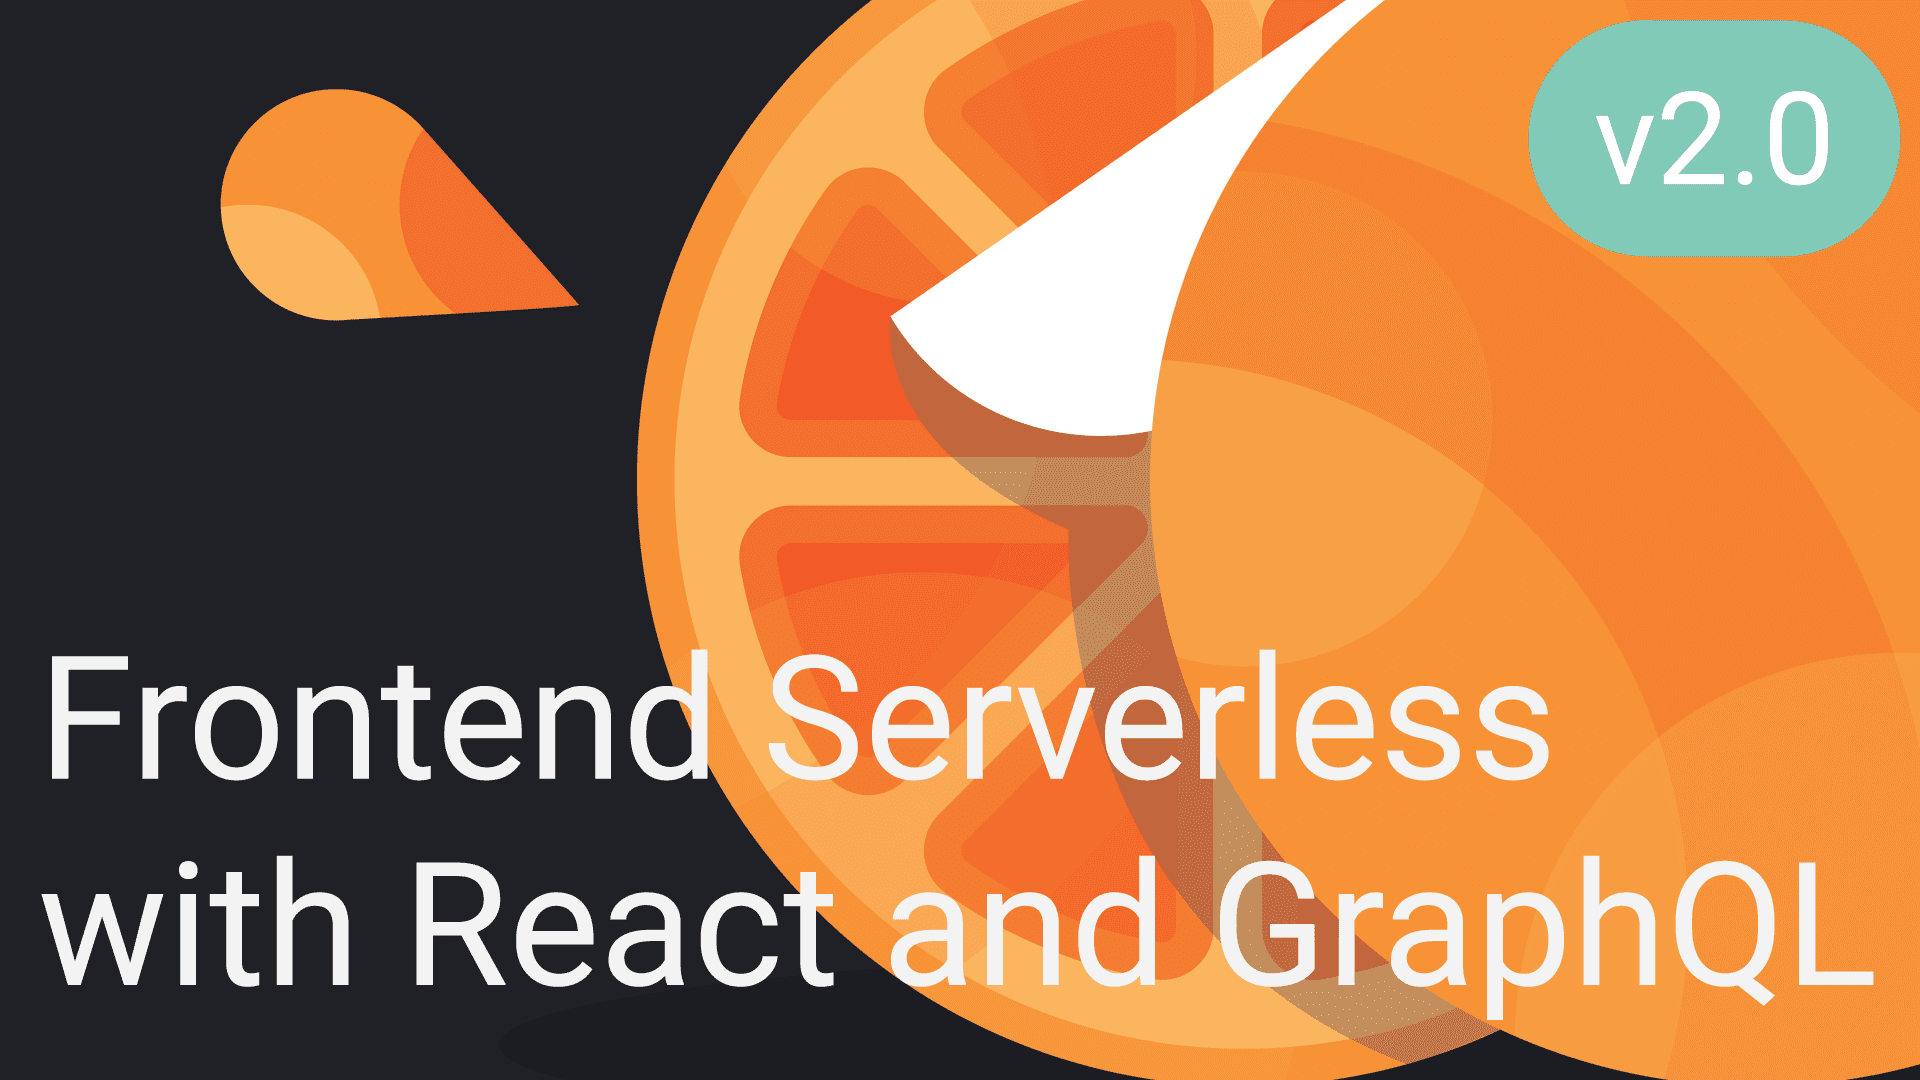 Frontend Serverless with React and GraphQL